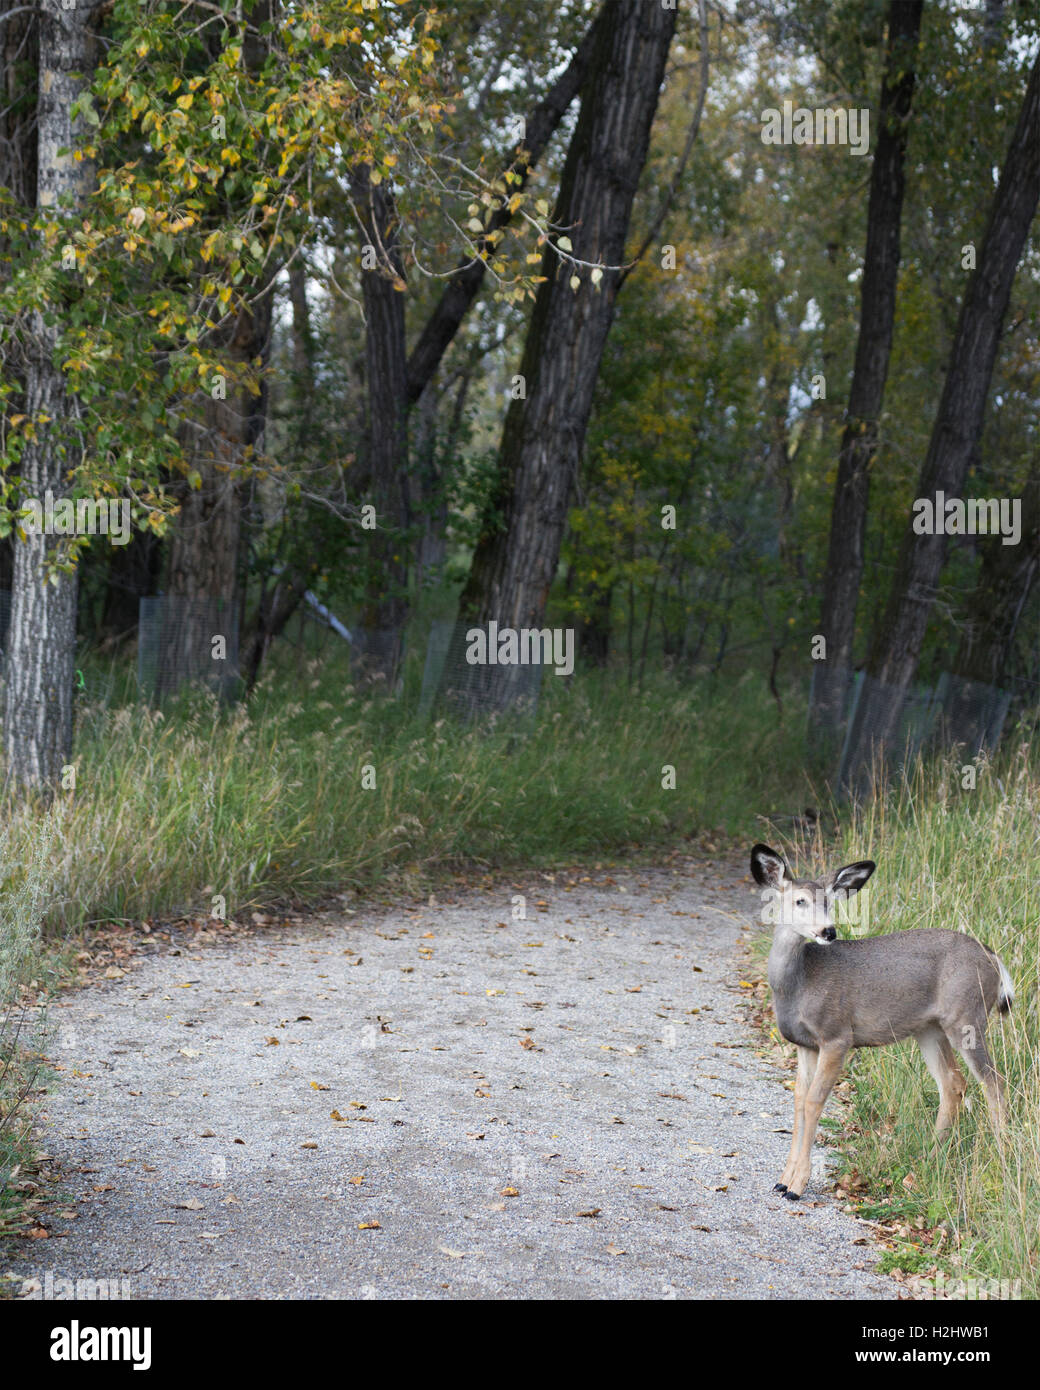 Mule deer (Odocoileus hemionus) in urban sanctuary - Stock Image